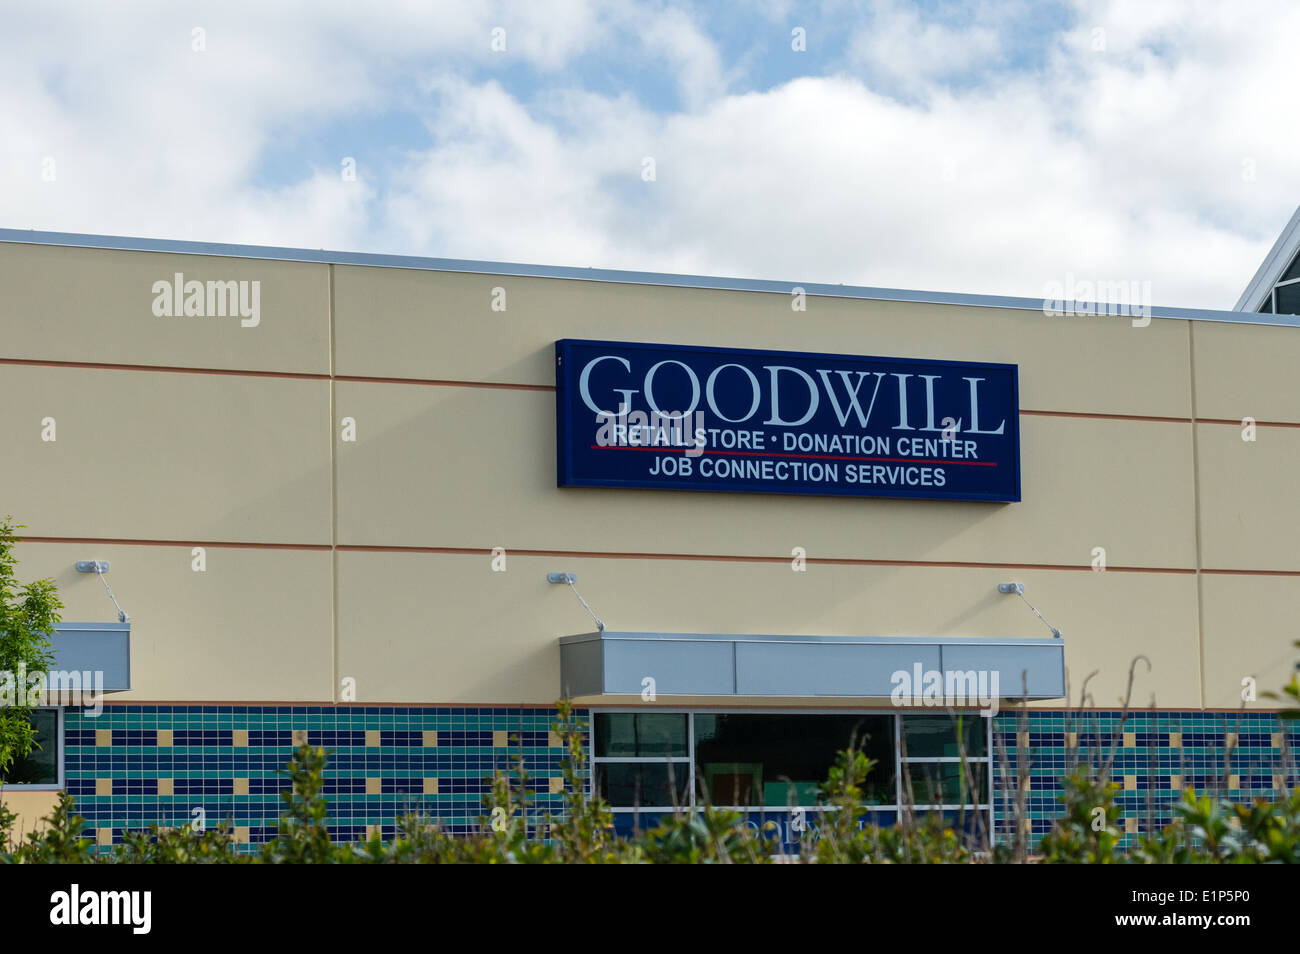 Goodwill Industries sign and building.  Tillamook Oregon - Stock Image